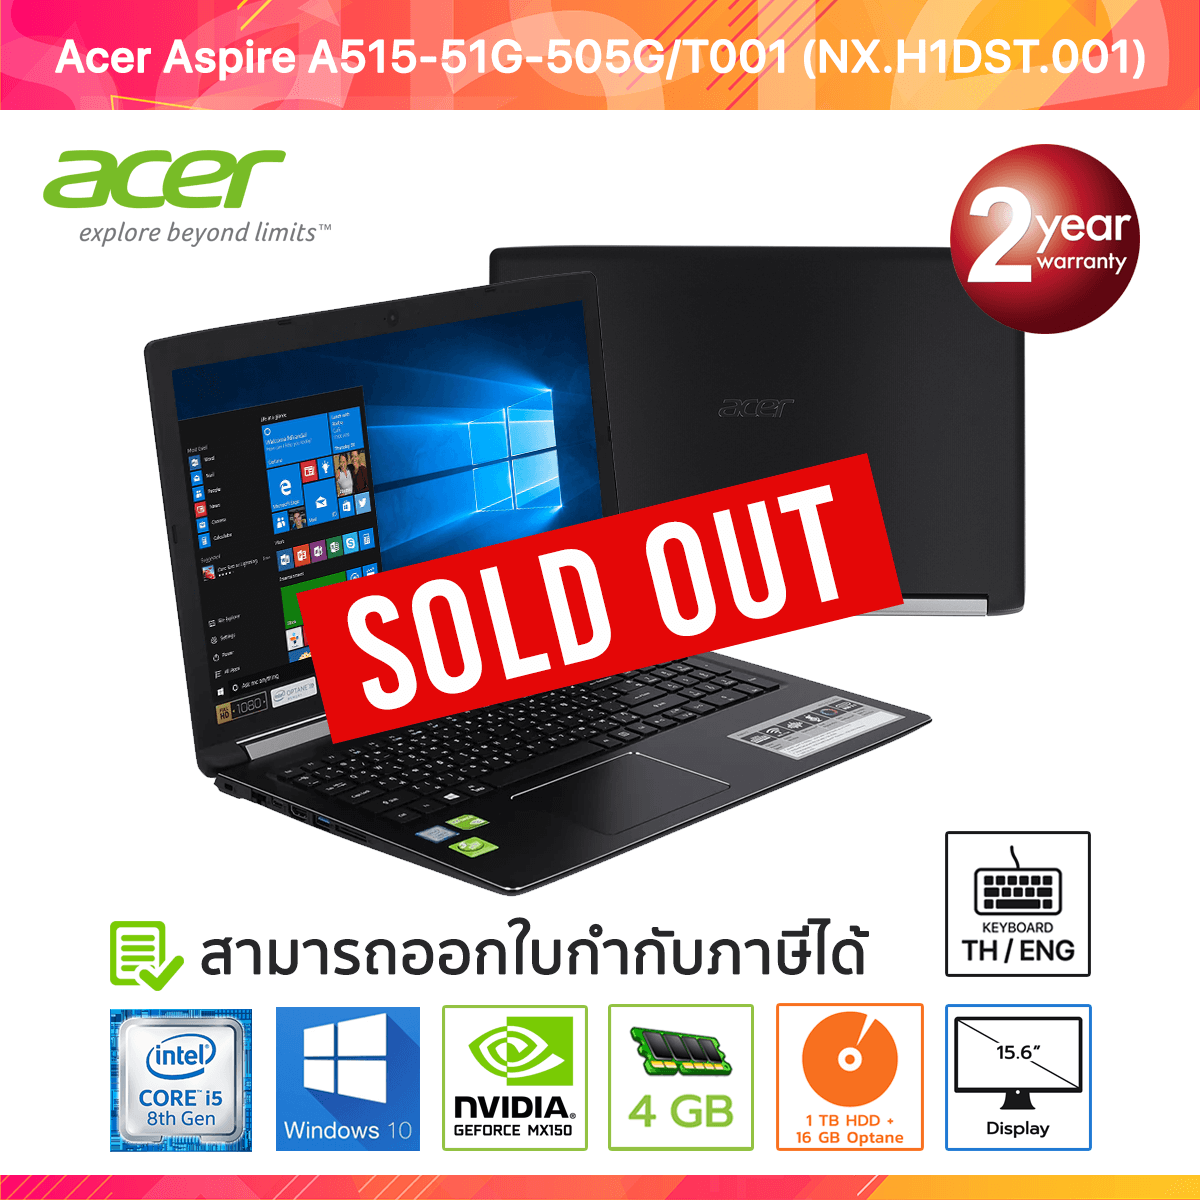 Acer Aspire A515-51G-505G/T001 (NX.H1DST.001) i5-8250U/4GB/1TB+16GB IntelOptane/MX150 2GB/15.6/Win10 (Black)